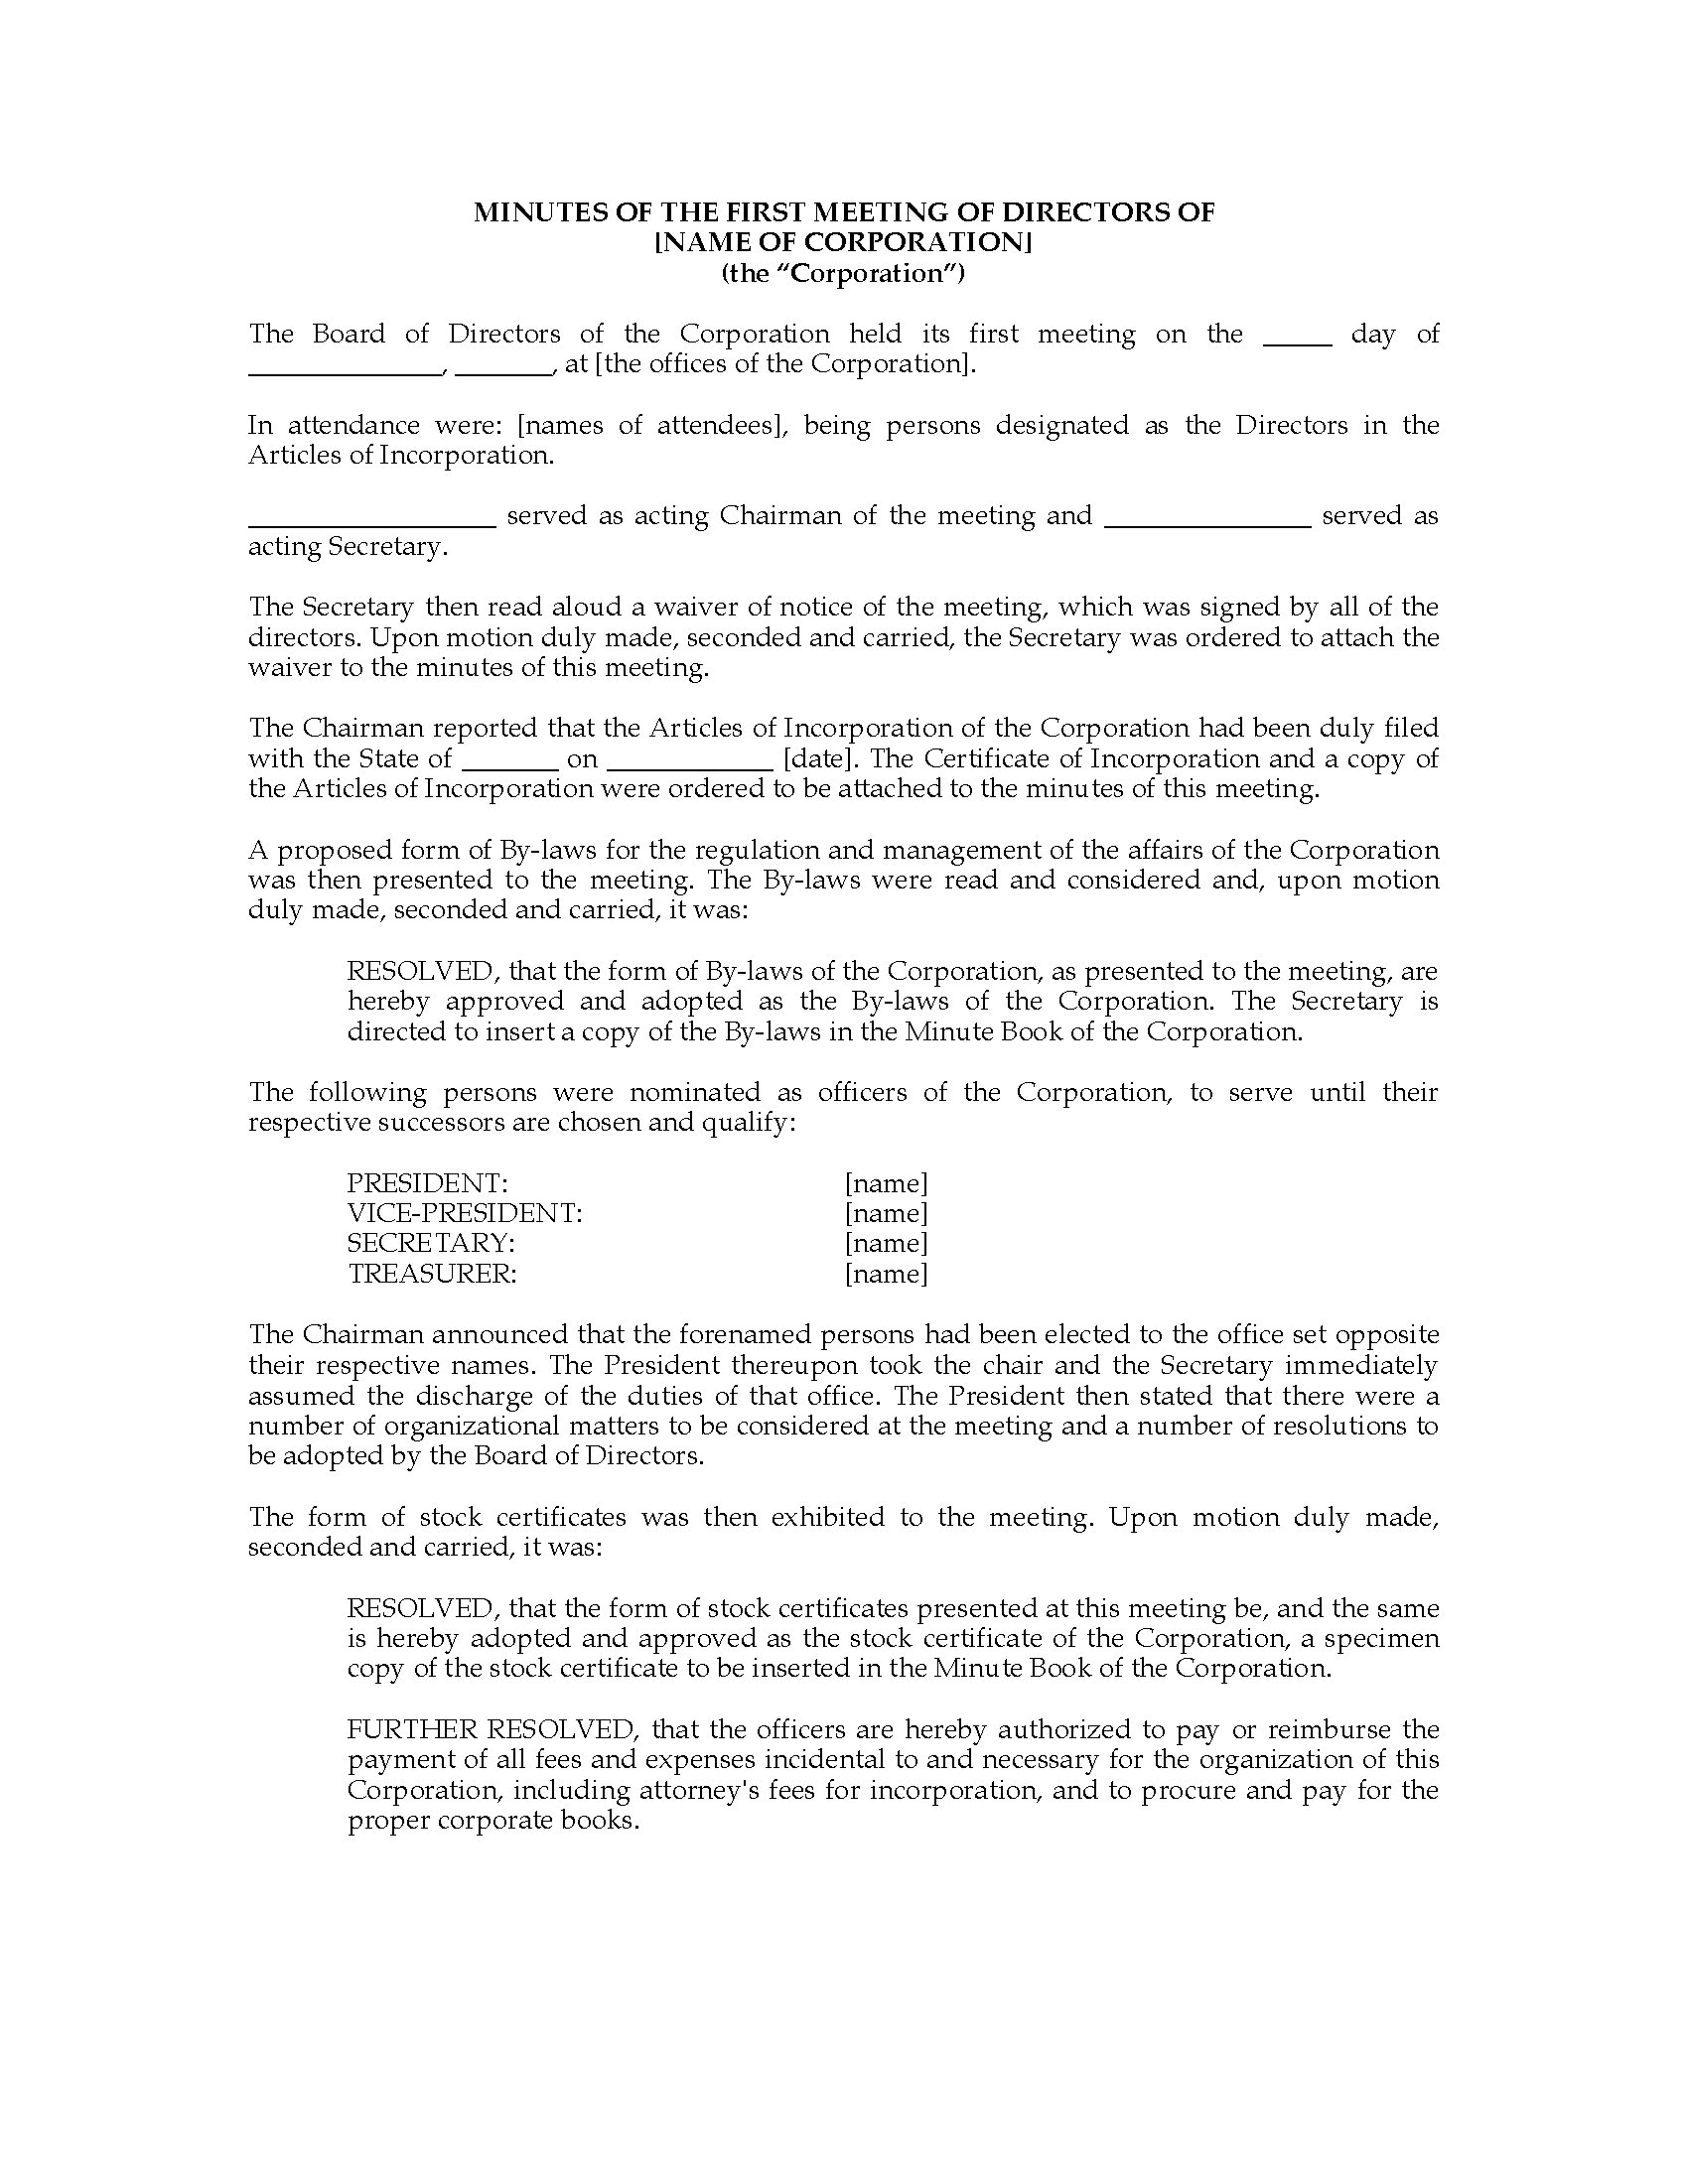 USA Minutes Of First Directors Meeting Legal Forms And Business - Legal form books